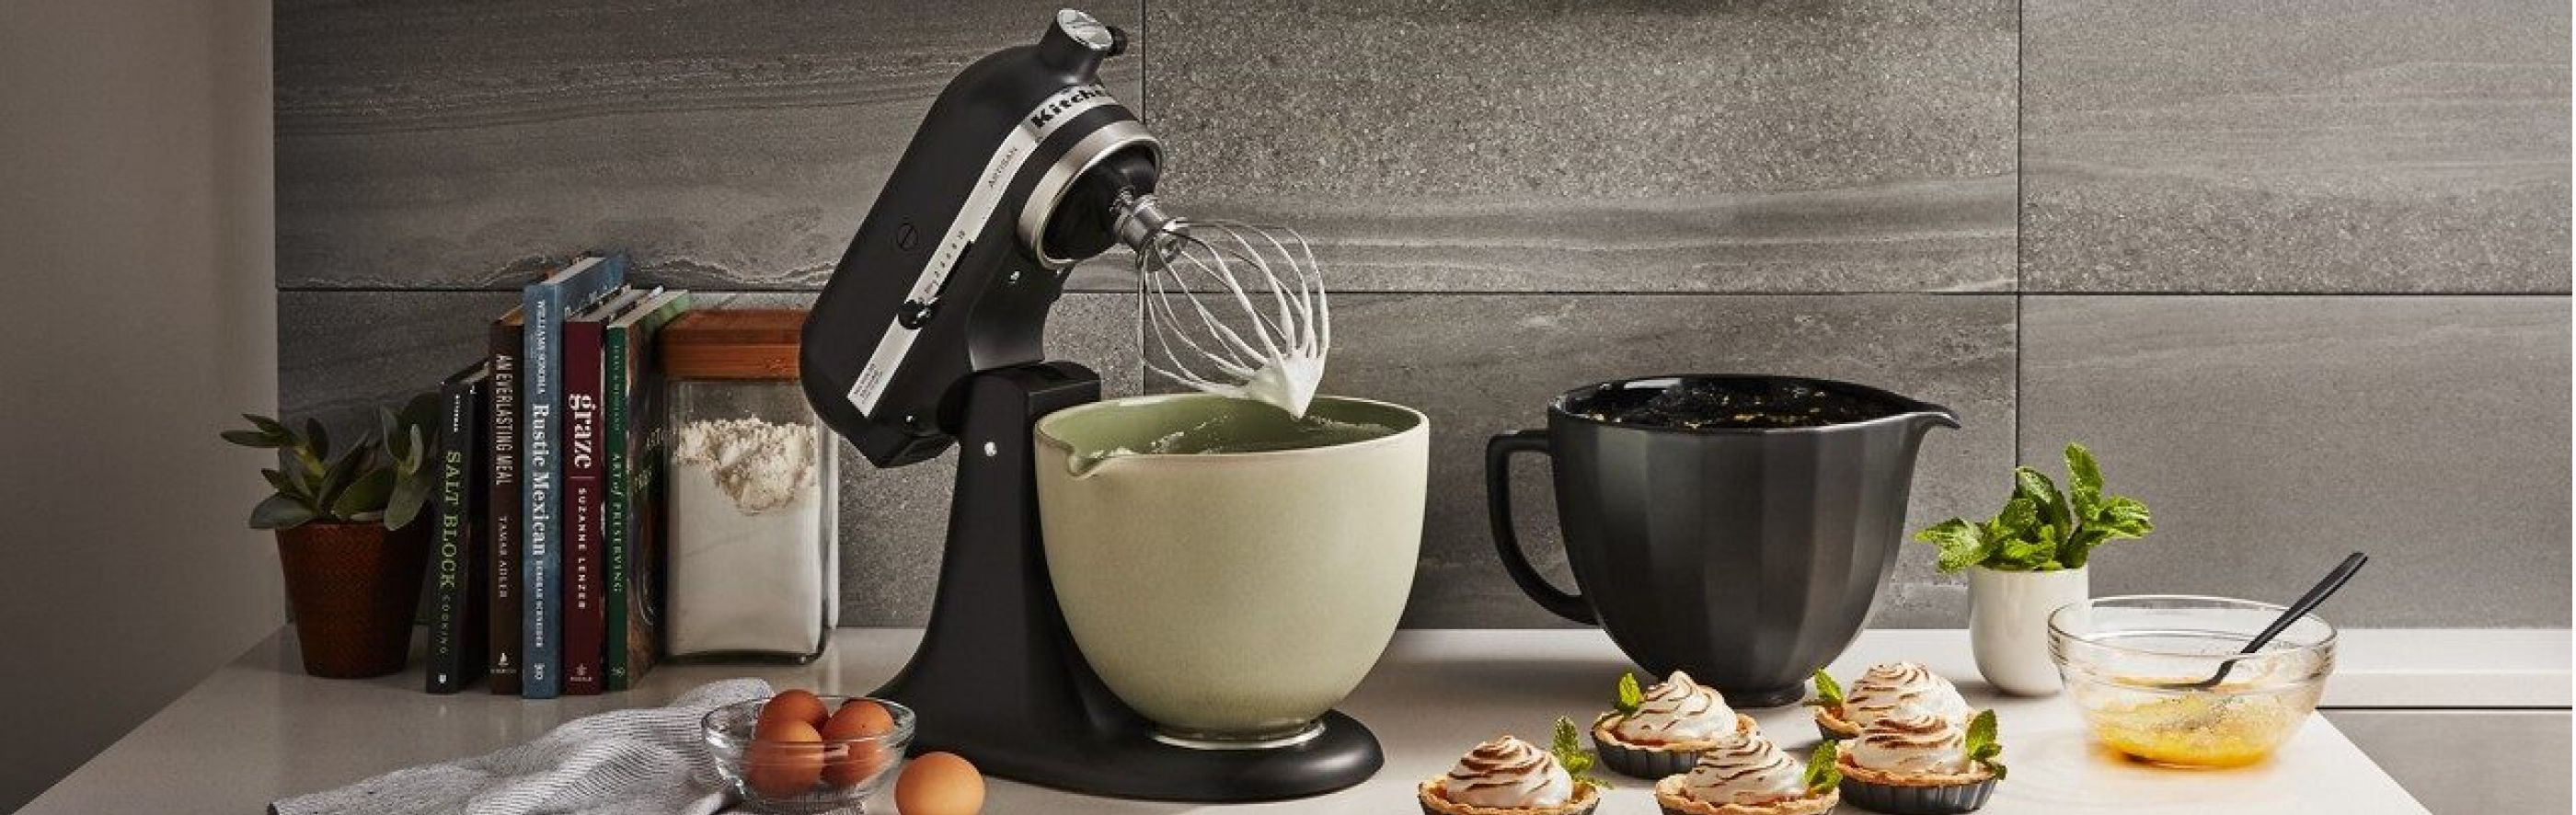 KitchenAid brand stand mixer on counter with four interchangeable ceramic mixer bowls